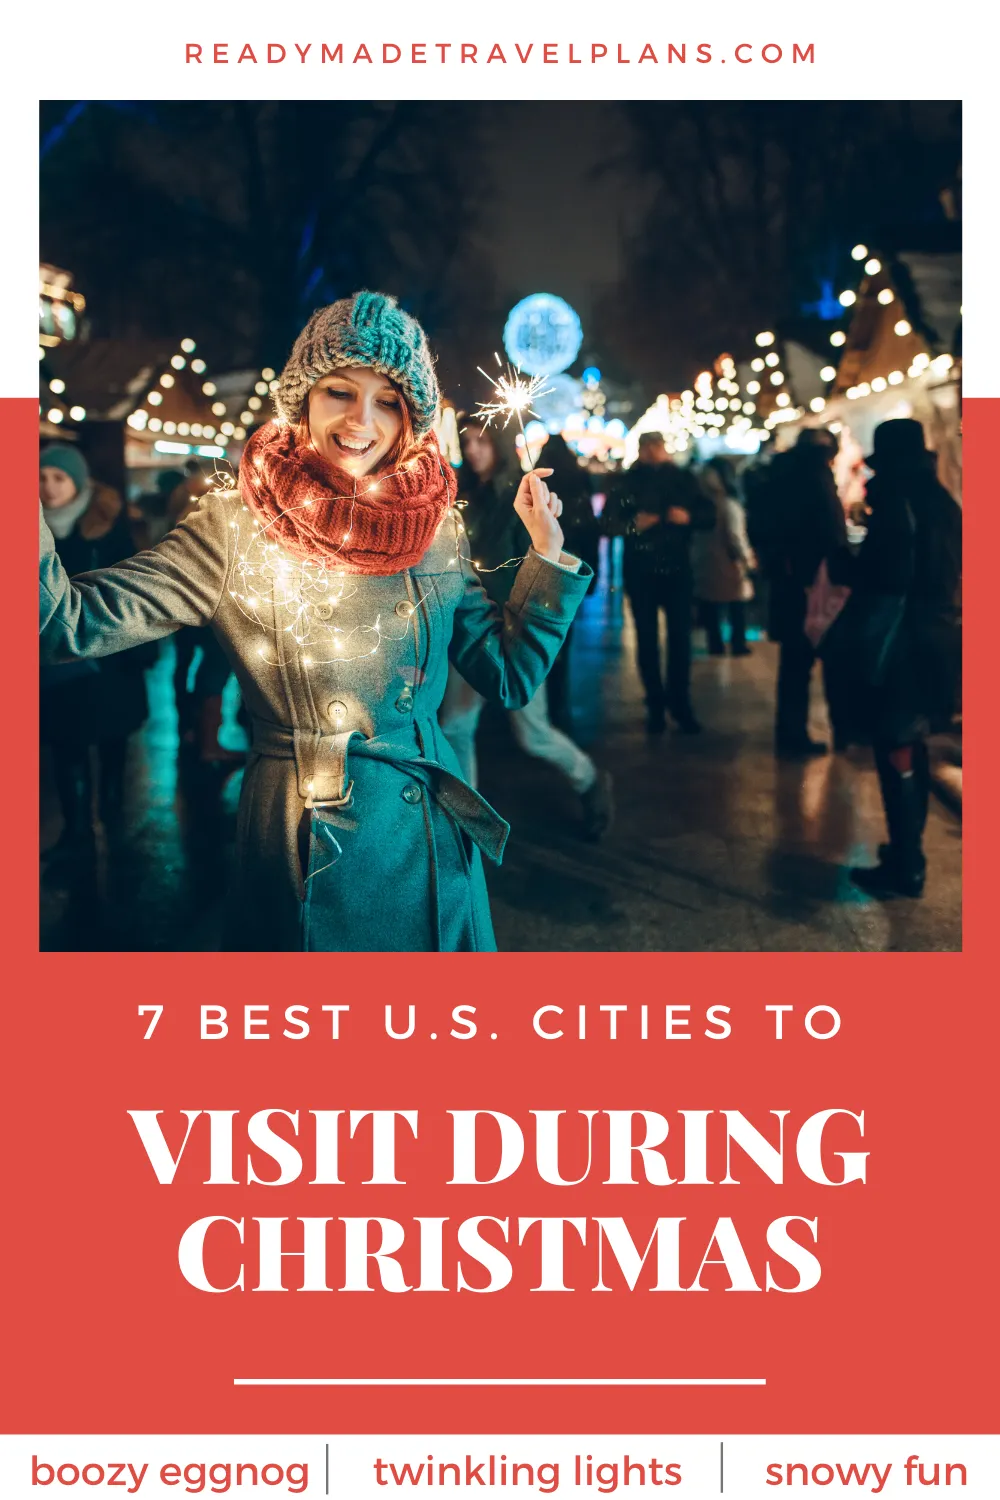 Getaways For Christmas 2020 Find holiday cheer, wintry fun and postcard perfect scenery in